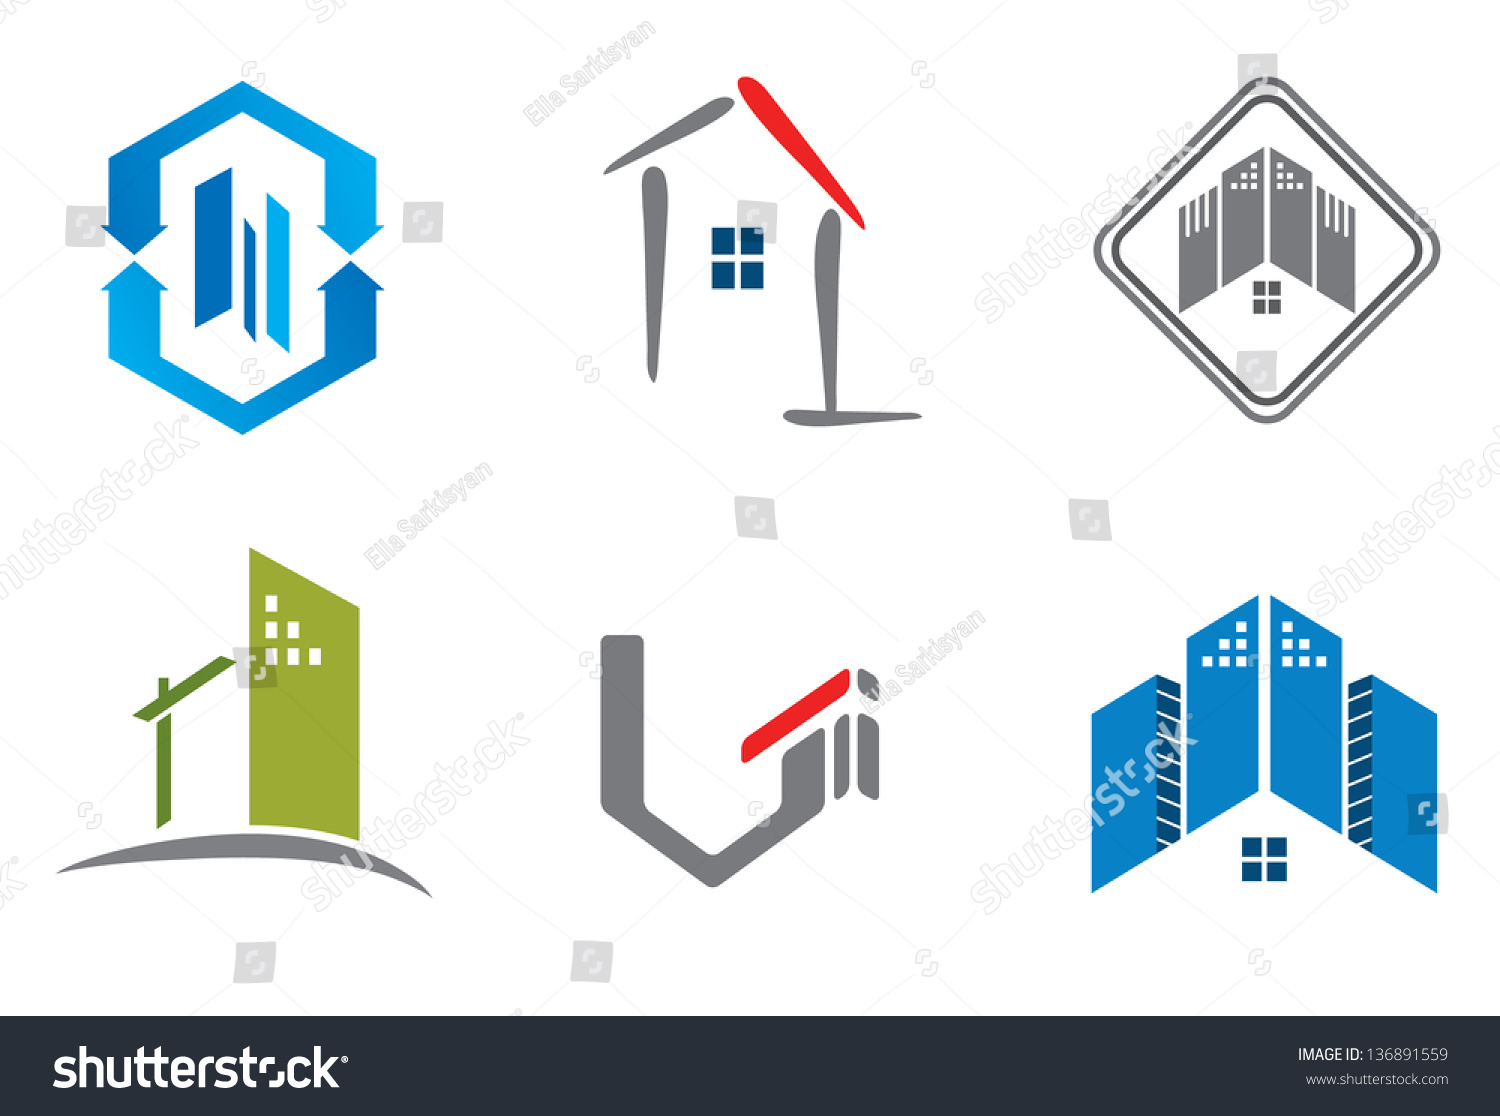 Real Estate Calendar Design : Real estate design elements logo designing stock vector